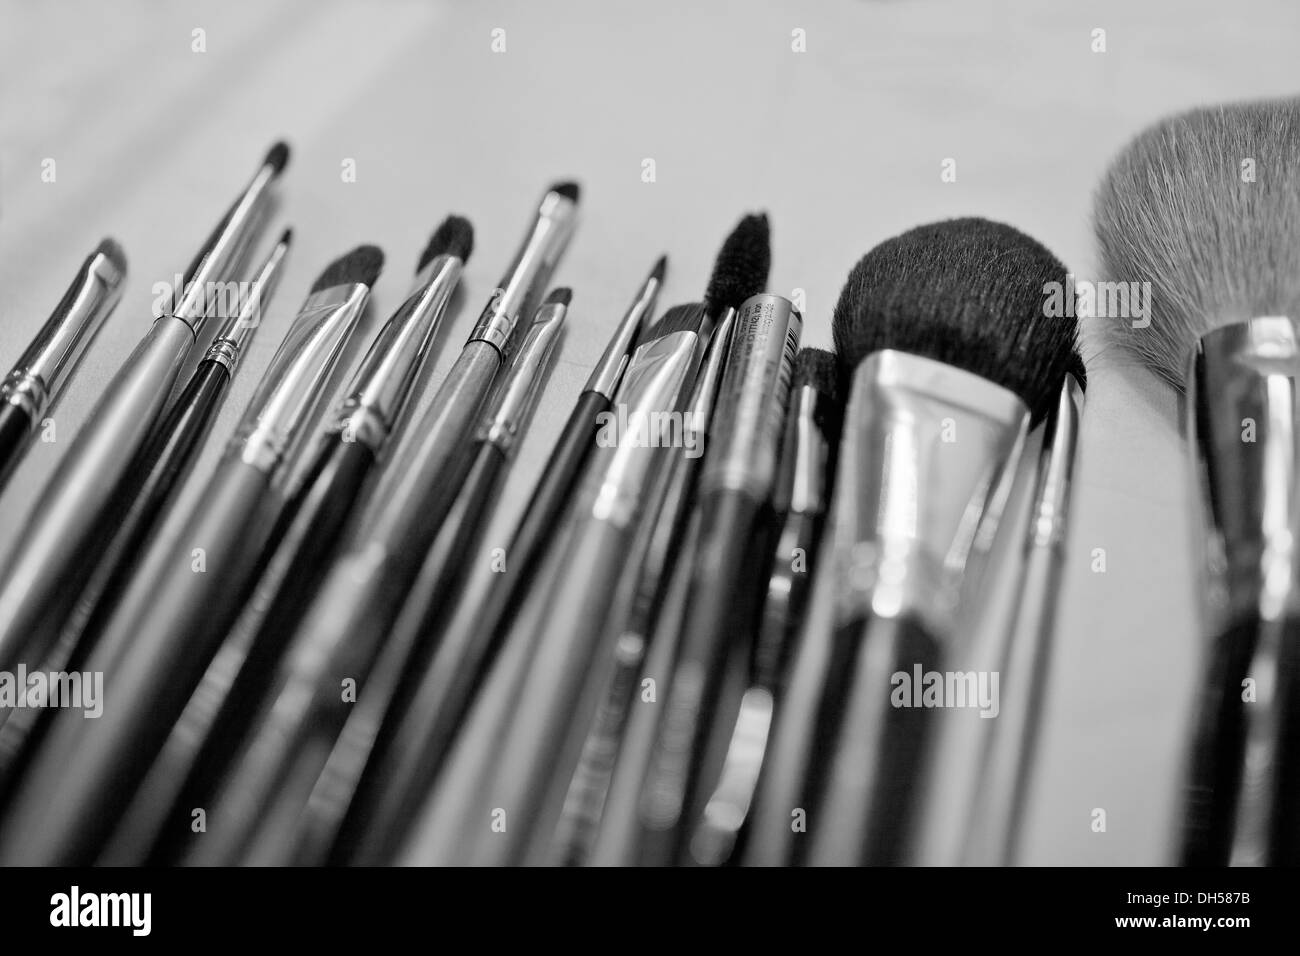 Makeup brushes - Stock Image